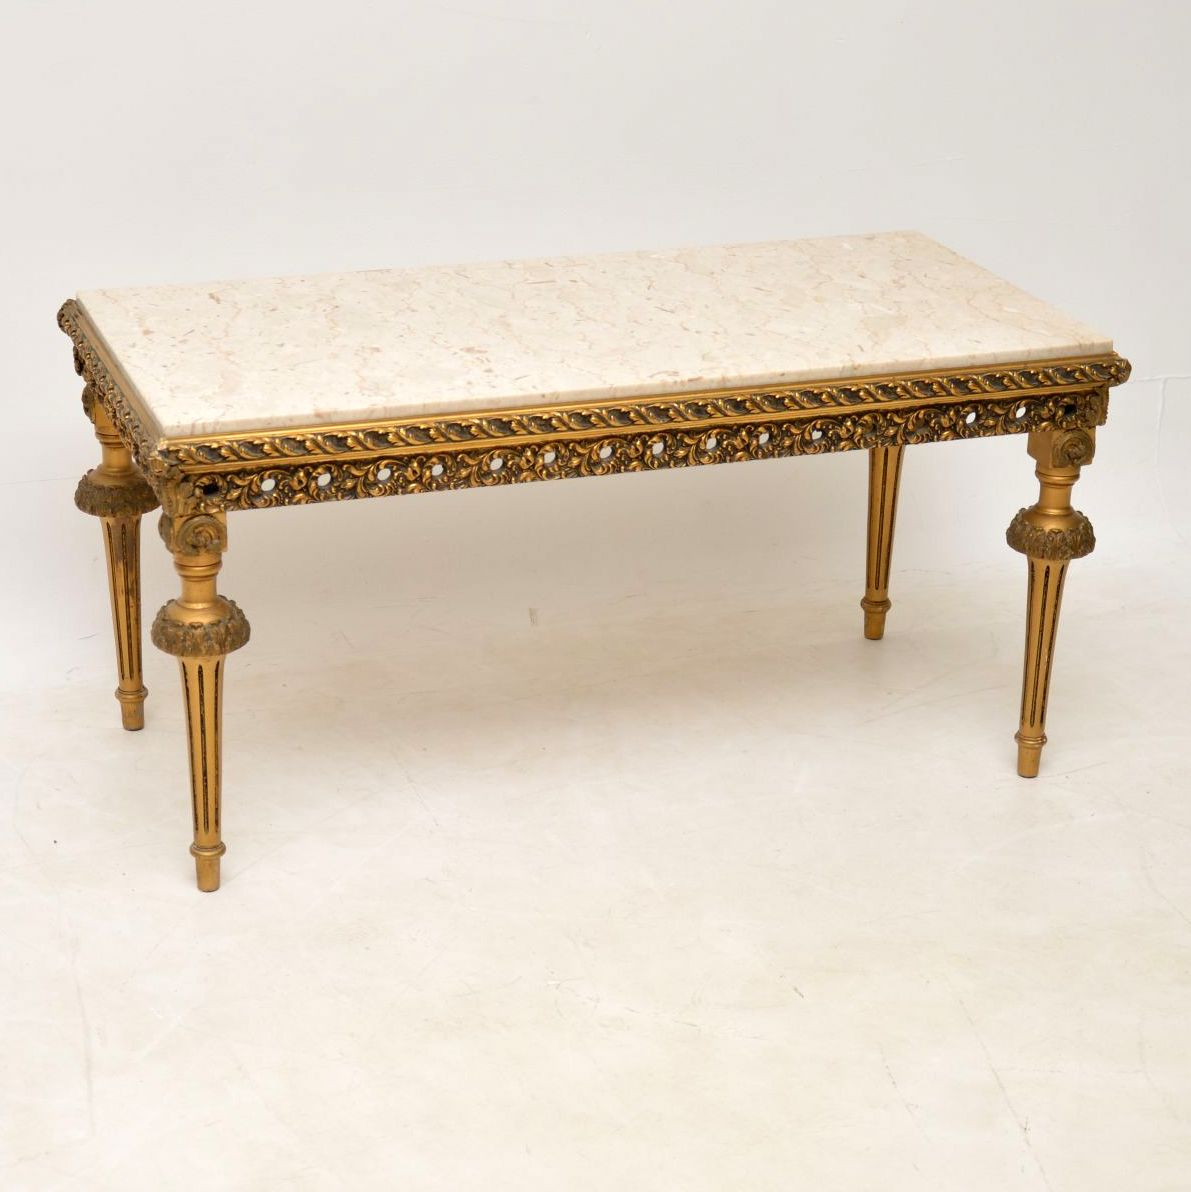 Antique French Gilt Wood & Marble Coffee Table